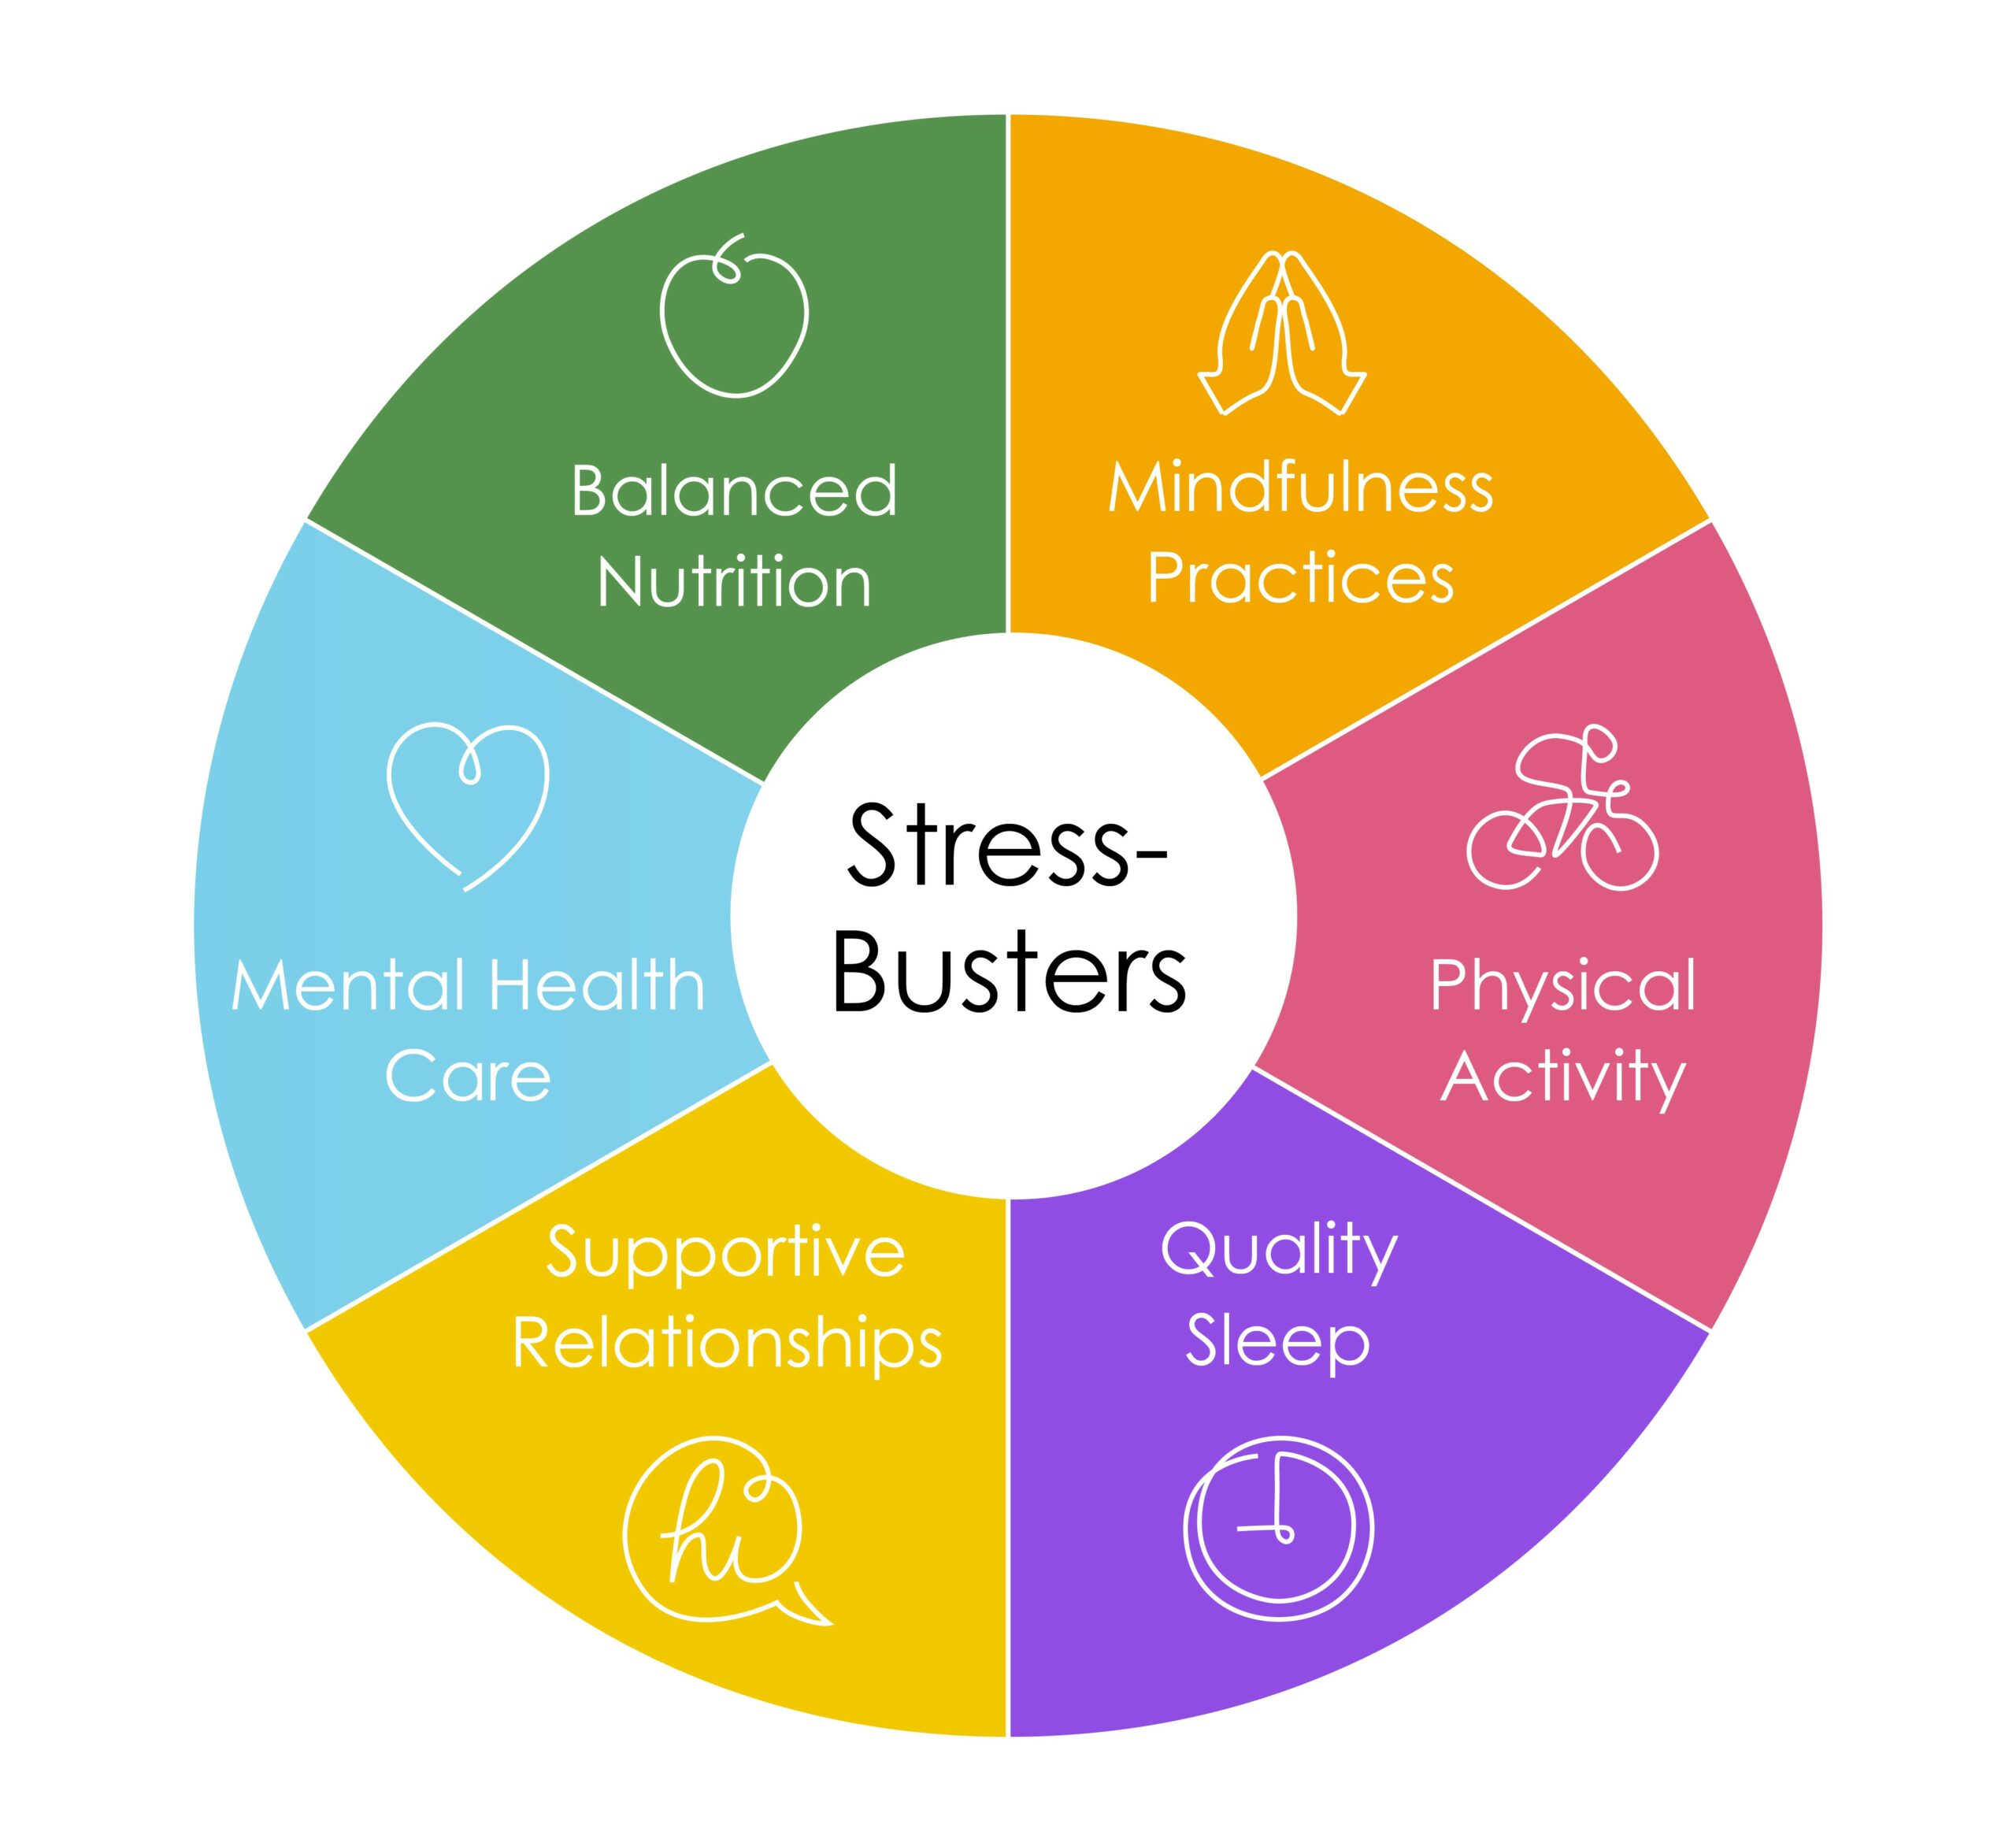 Stress Busters. Balanced Nutrition. Mindfulness Practicess. Physical Activity. Quality Sleep. Supportive Relationships. Mental Health Care..